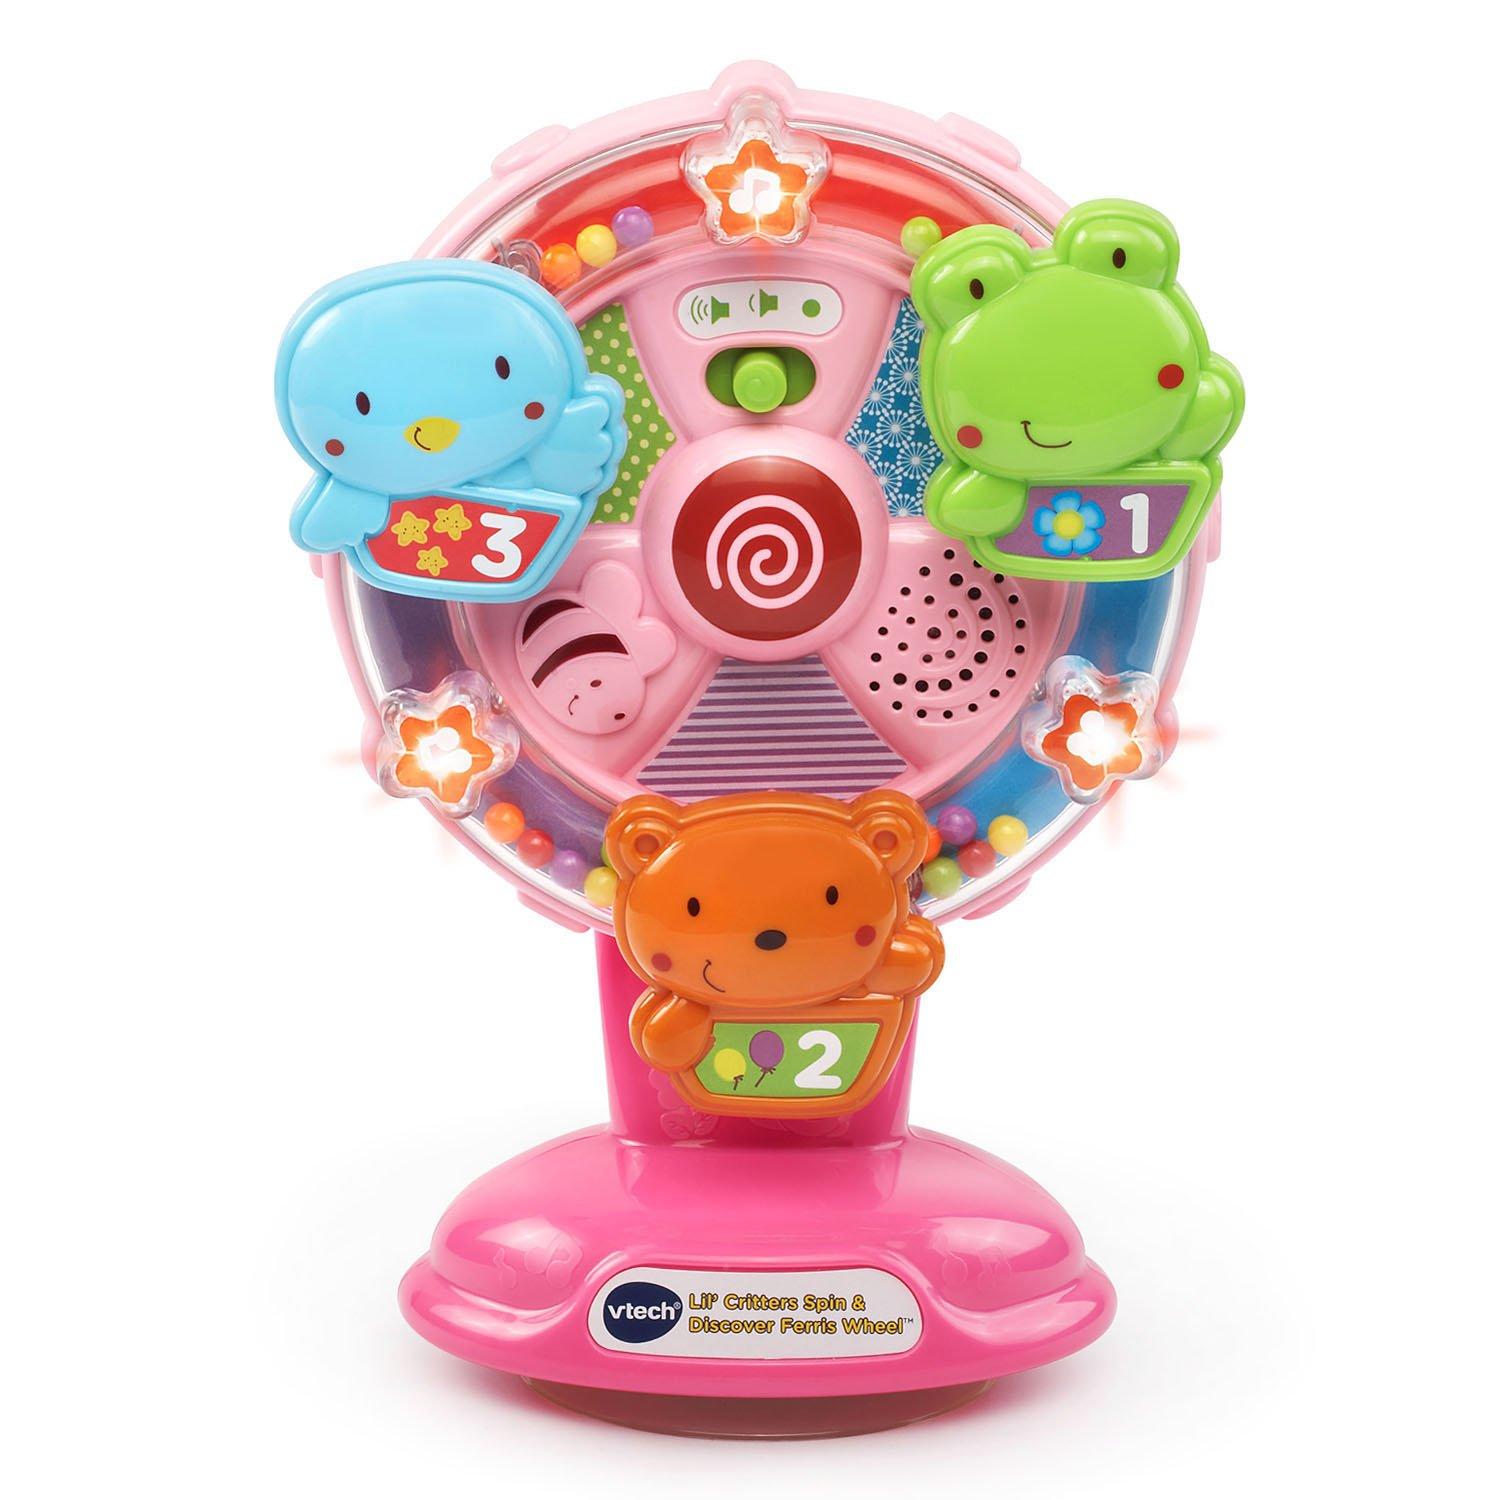 VTech Lil' Critters Spin and Discover Ferris Wheels, Pink (Amazon Exclusive) by VTech (Image #1)